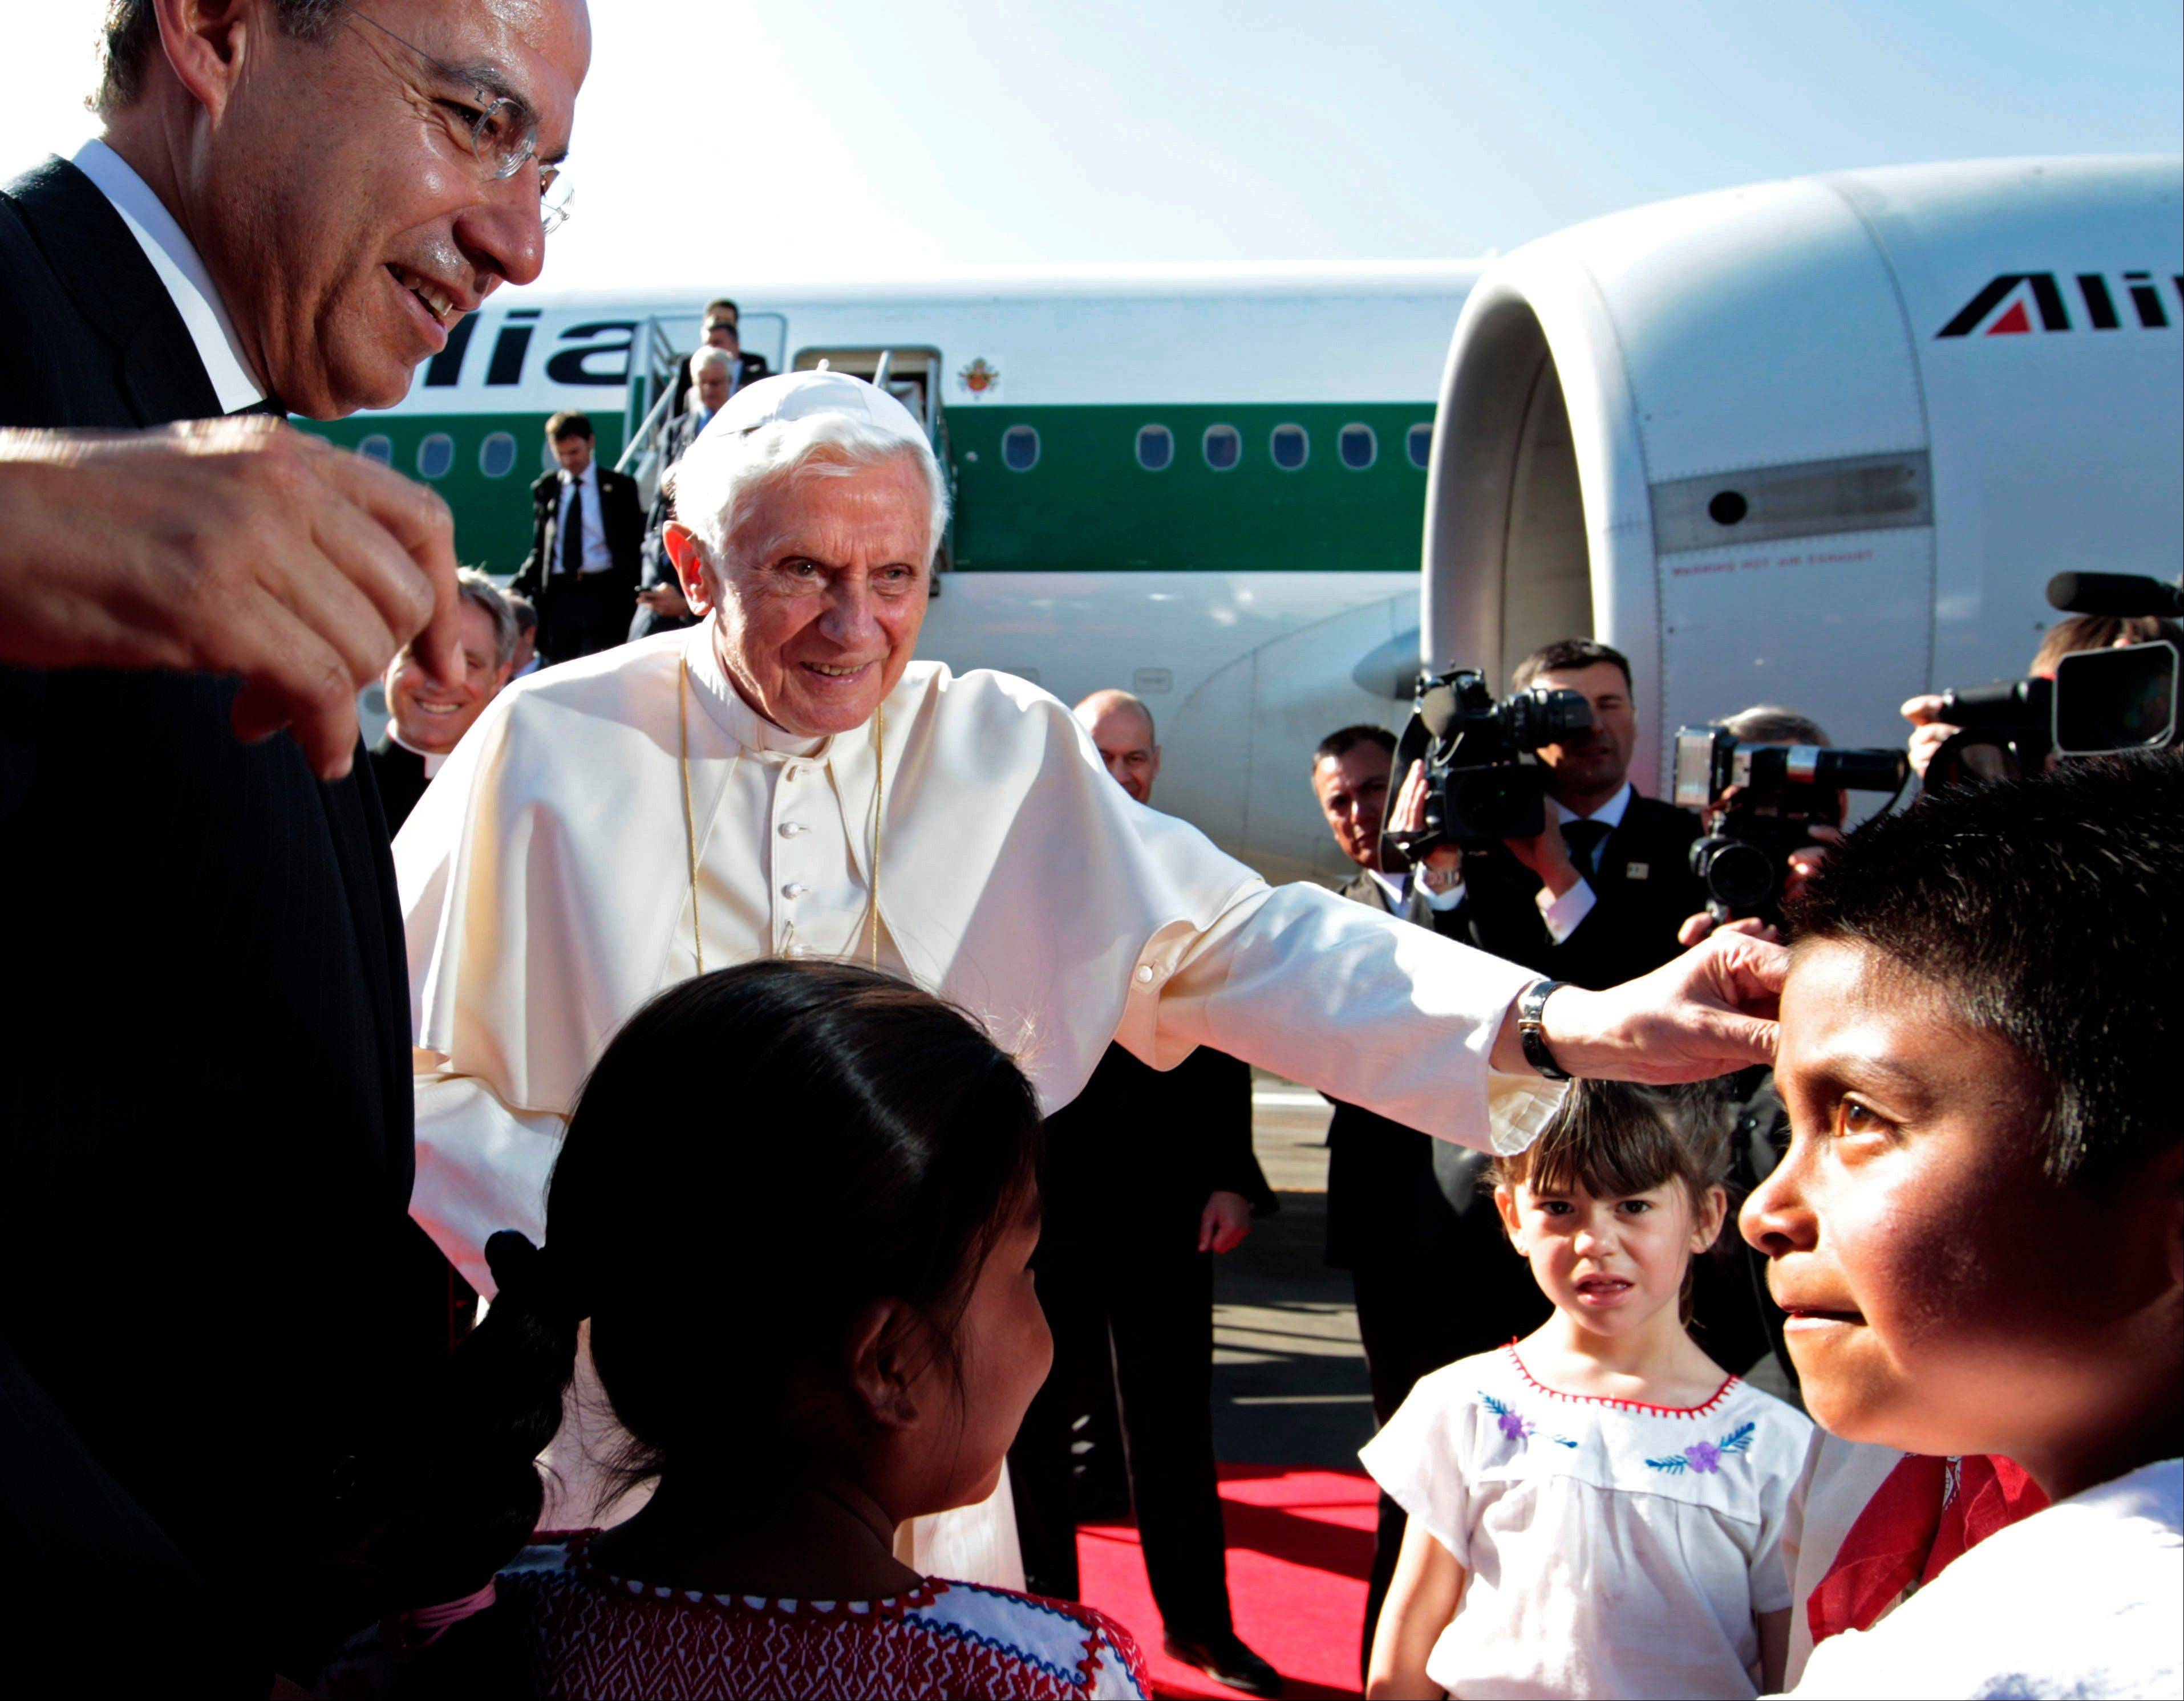 Mexico's President Felipe Calderon, left, looks on as Pope Benedict XVI is greeted by children at the airport in Silao, Mexico, his first to the country. Pope Benedict XVI announced Monday he would resign Feb. 28 because he is simply too old to carry on.